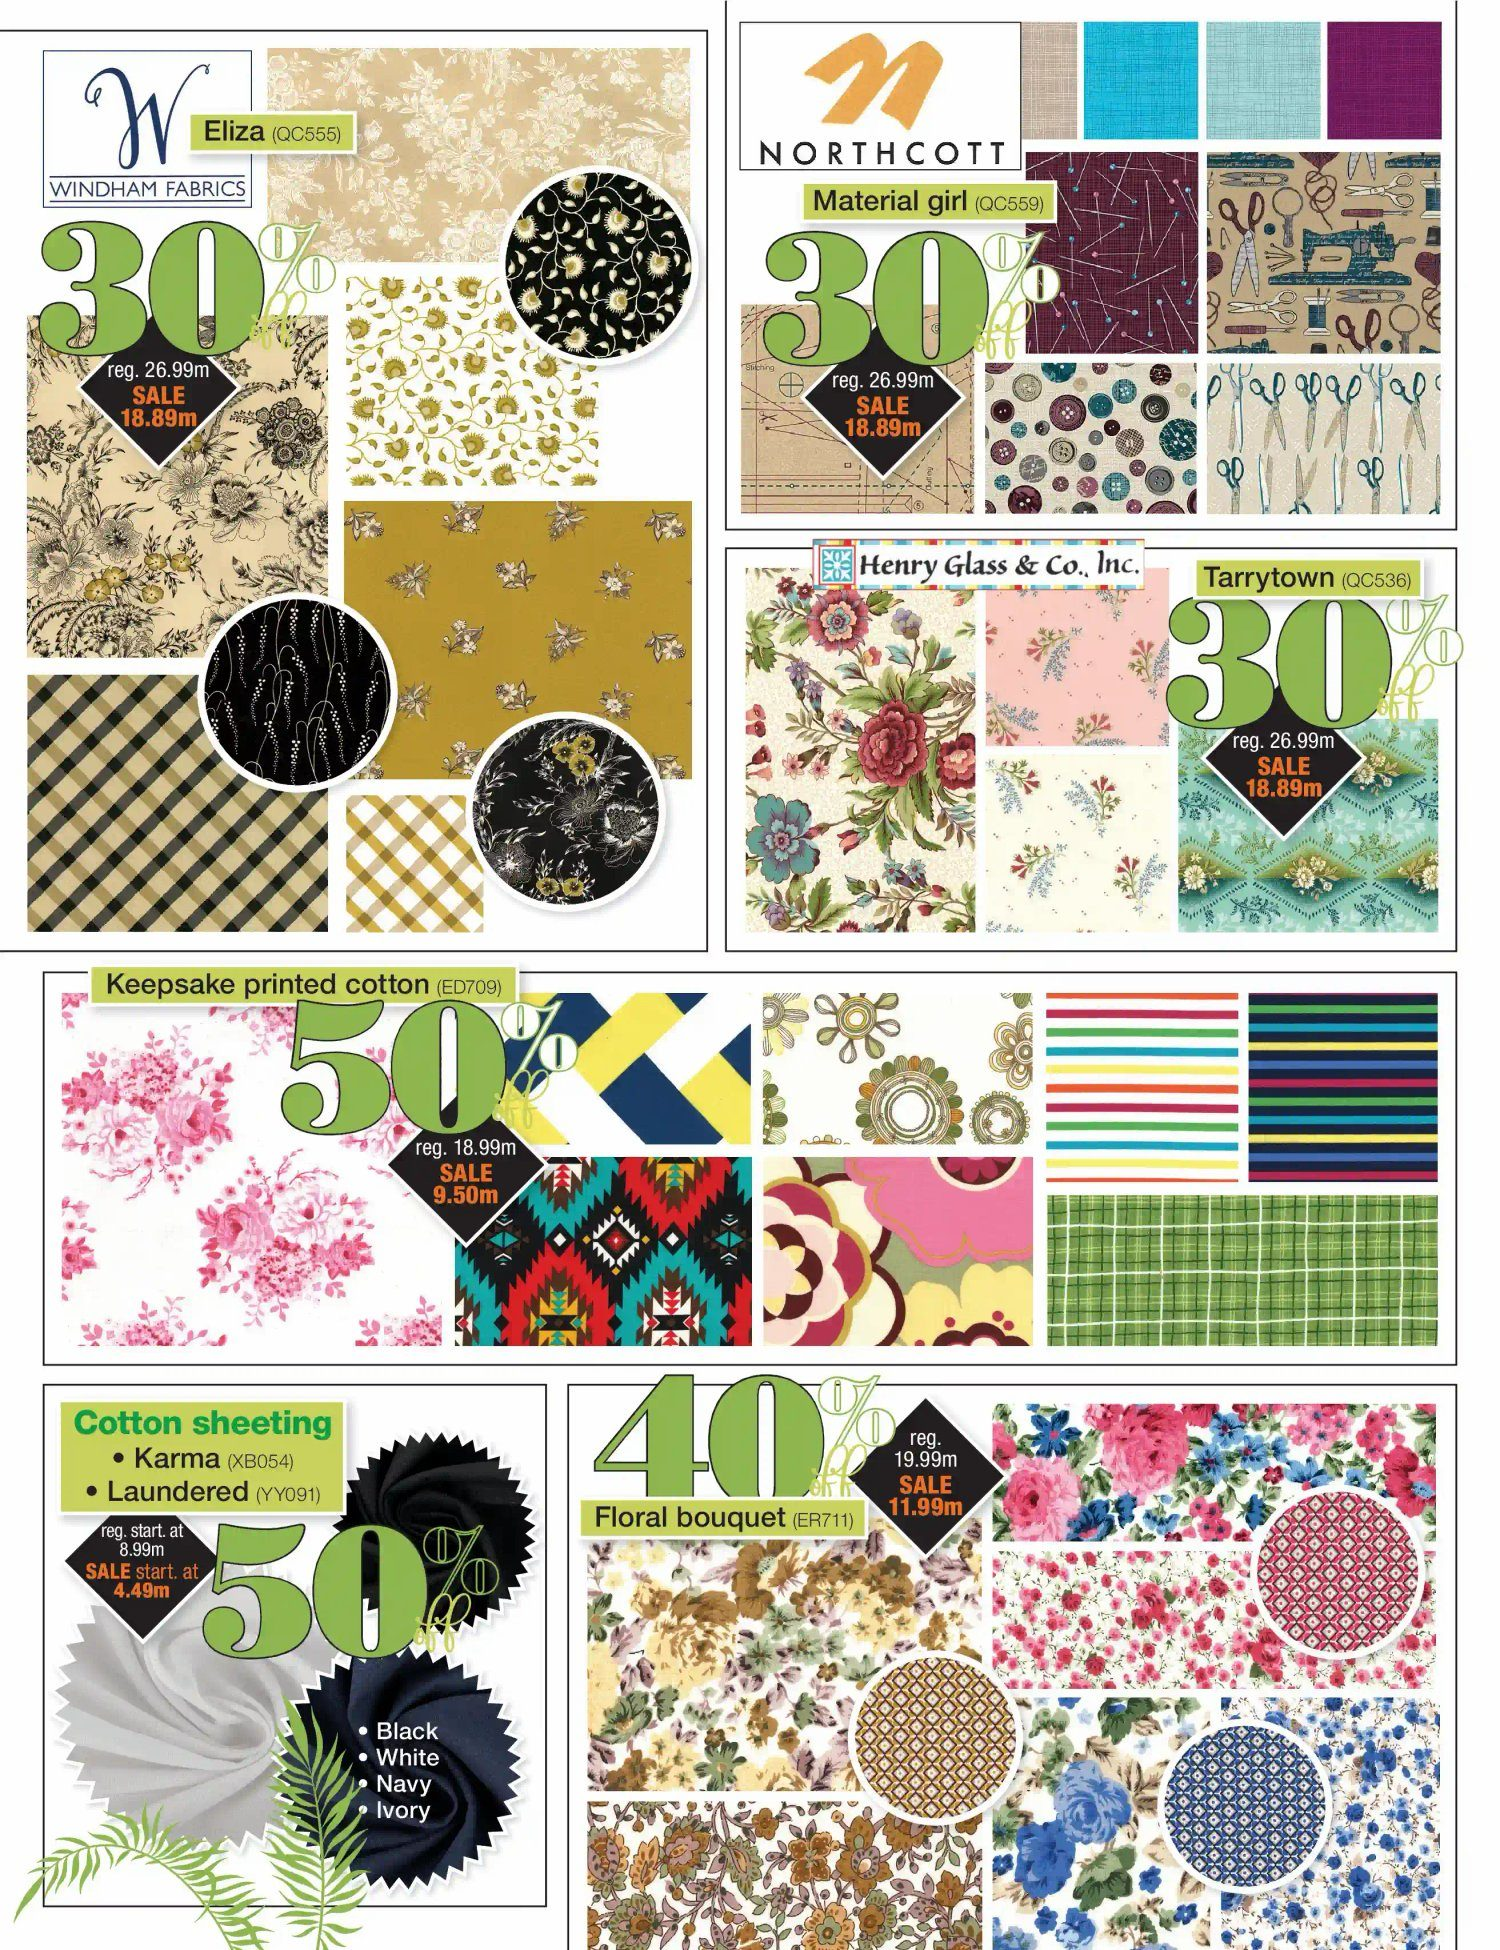 Fabricville - Club Elite Members Only - Page 6